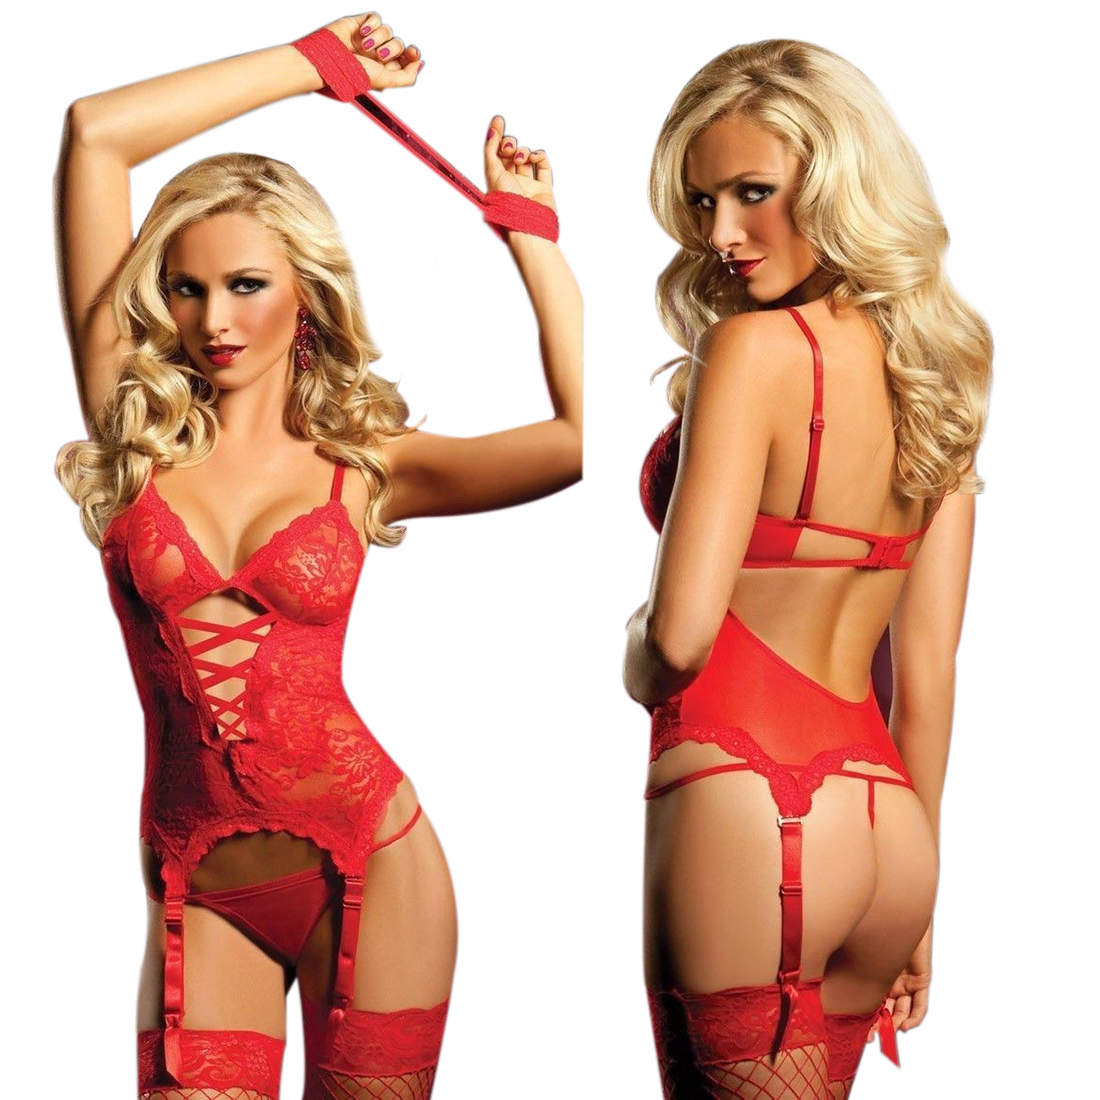 Intimate Valentine's Day Gift Red Camisole Sexy Lingerie Pajama ...